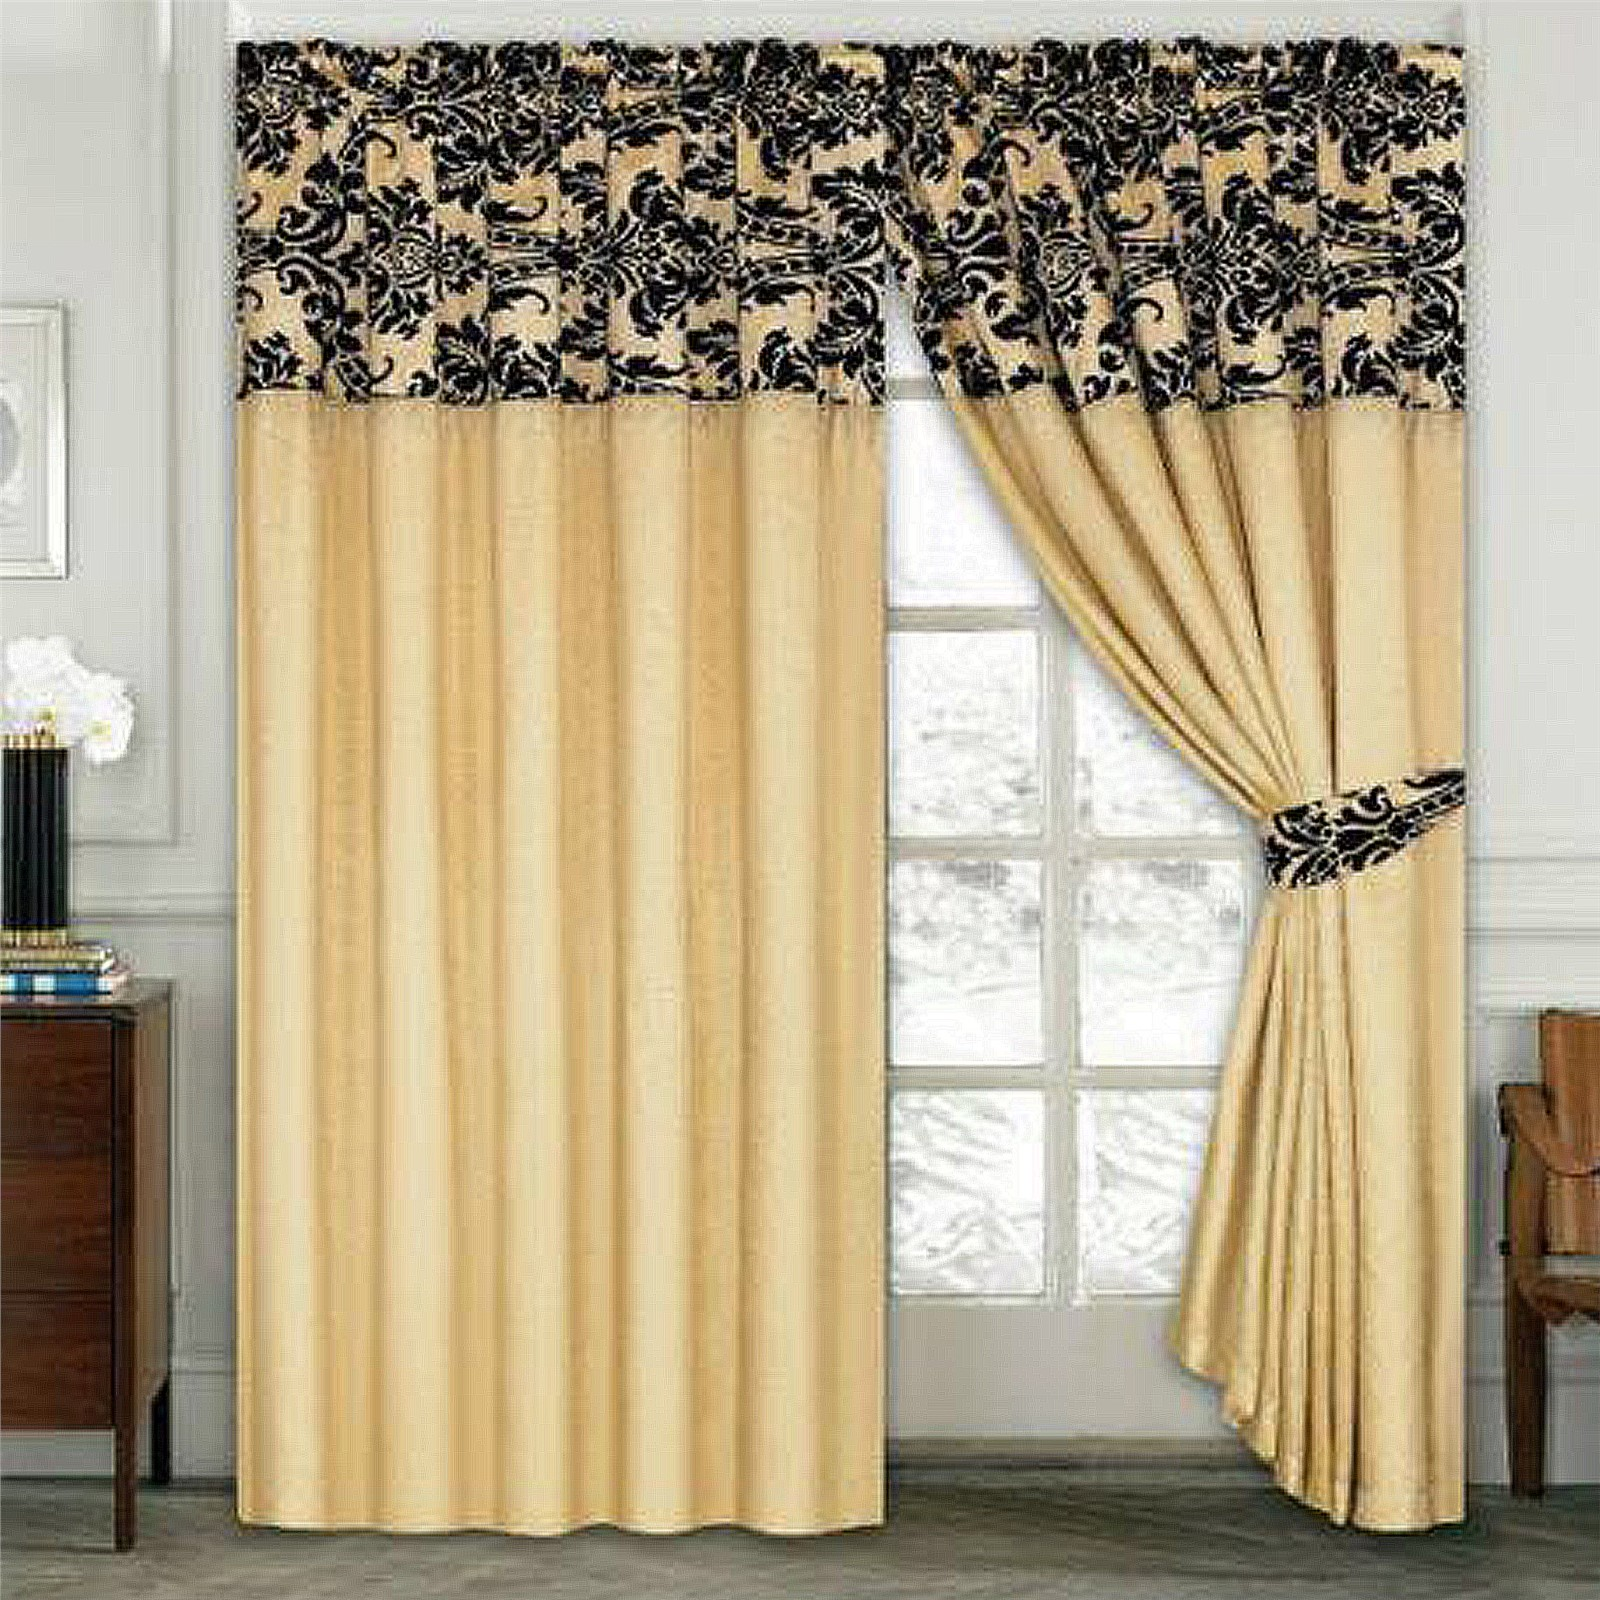 Luxury damask curtains pair of half flock pencil pleat for Living room curtains 90x90